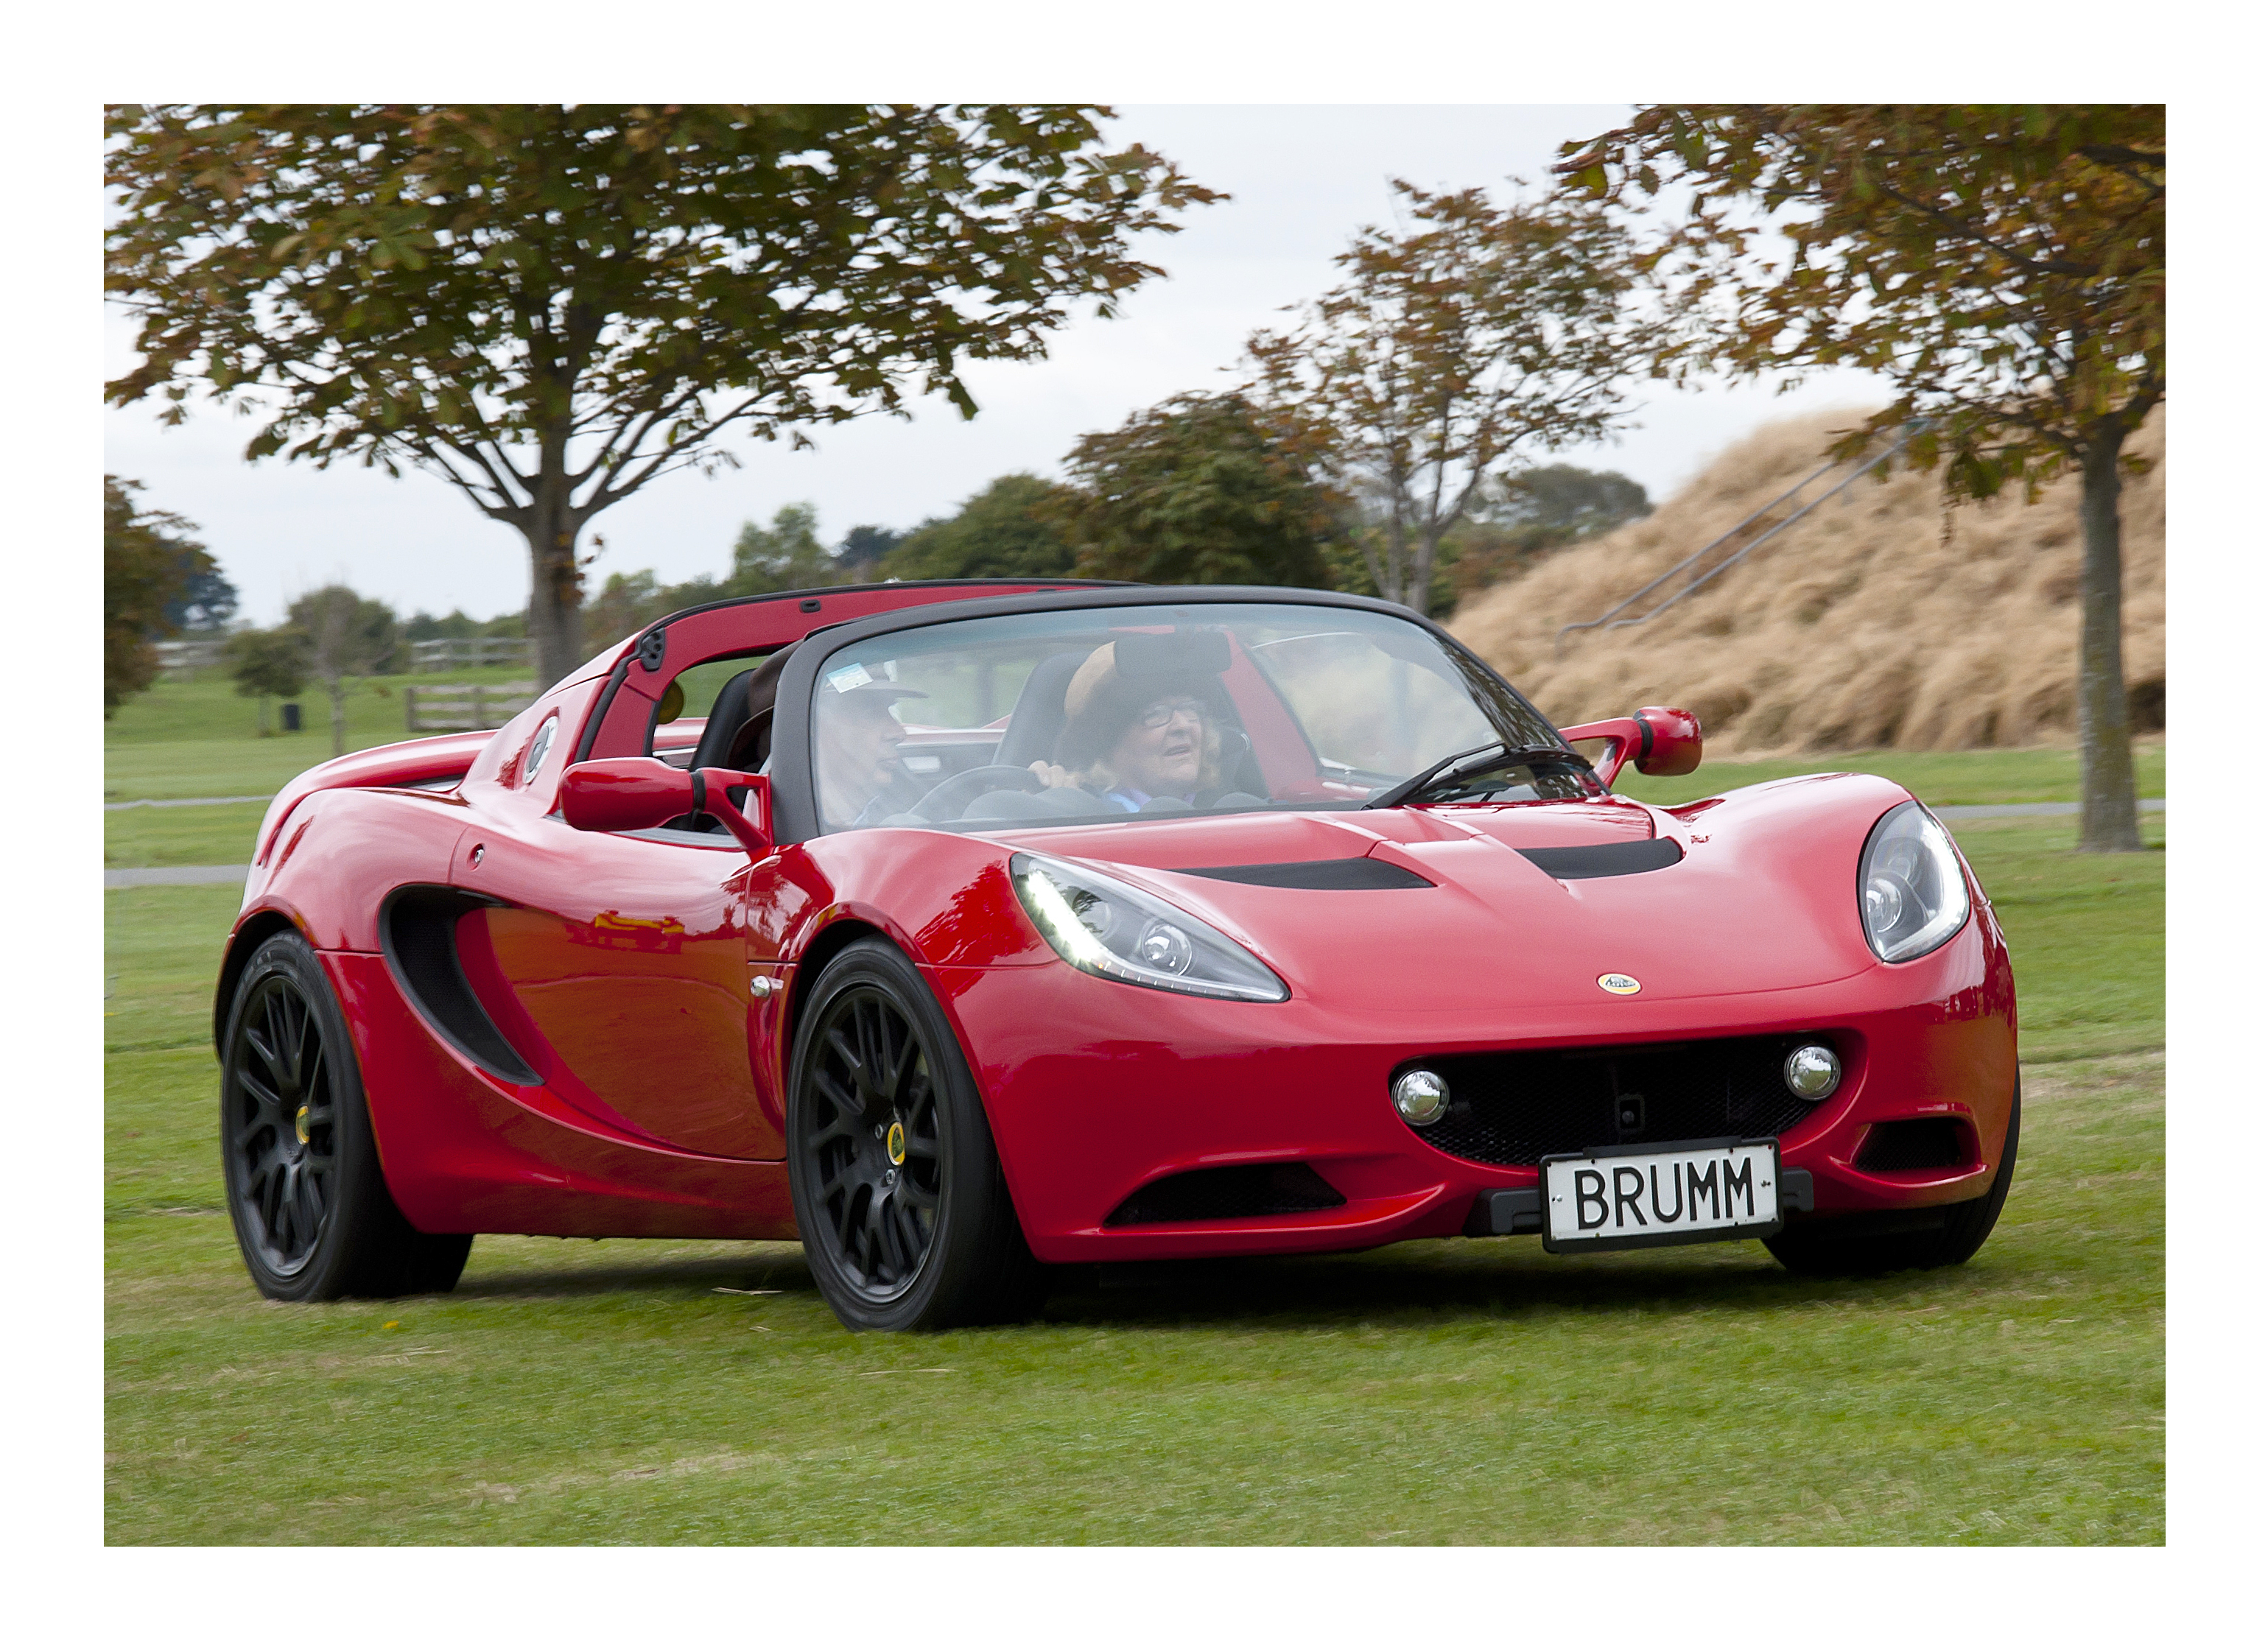 Lotus Elise from 2013, Auto racing, Car, Christchurch, Convertible, HQ Photo